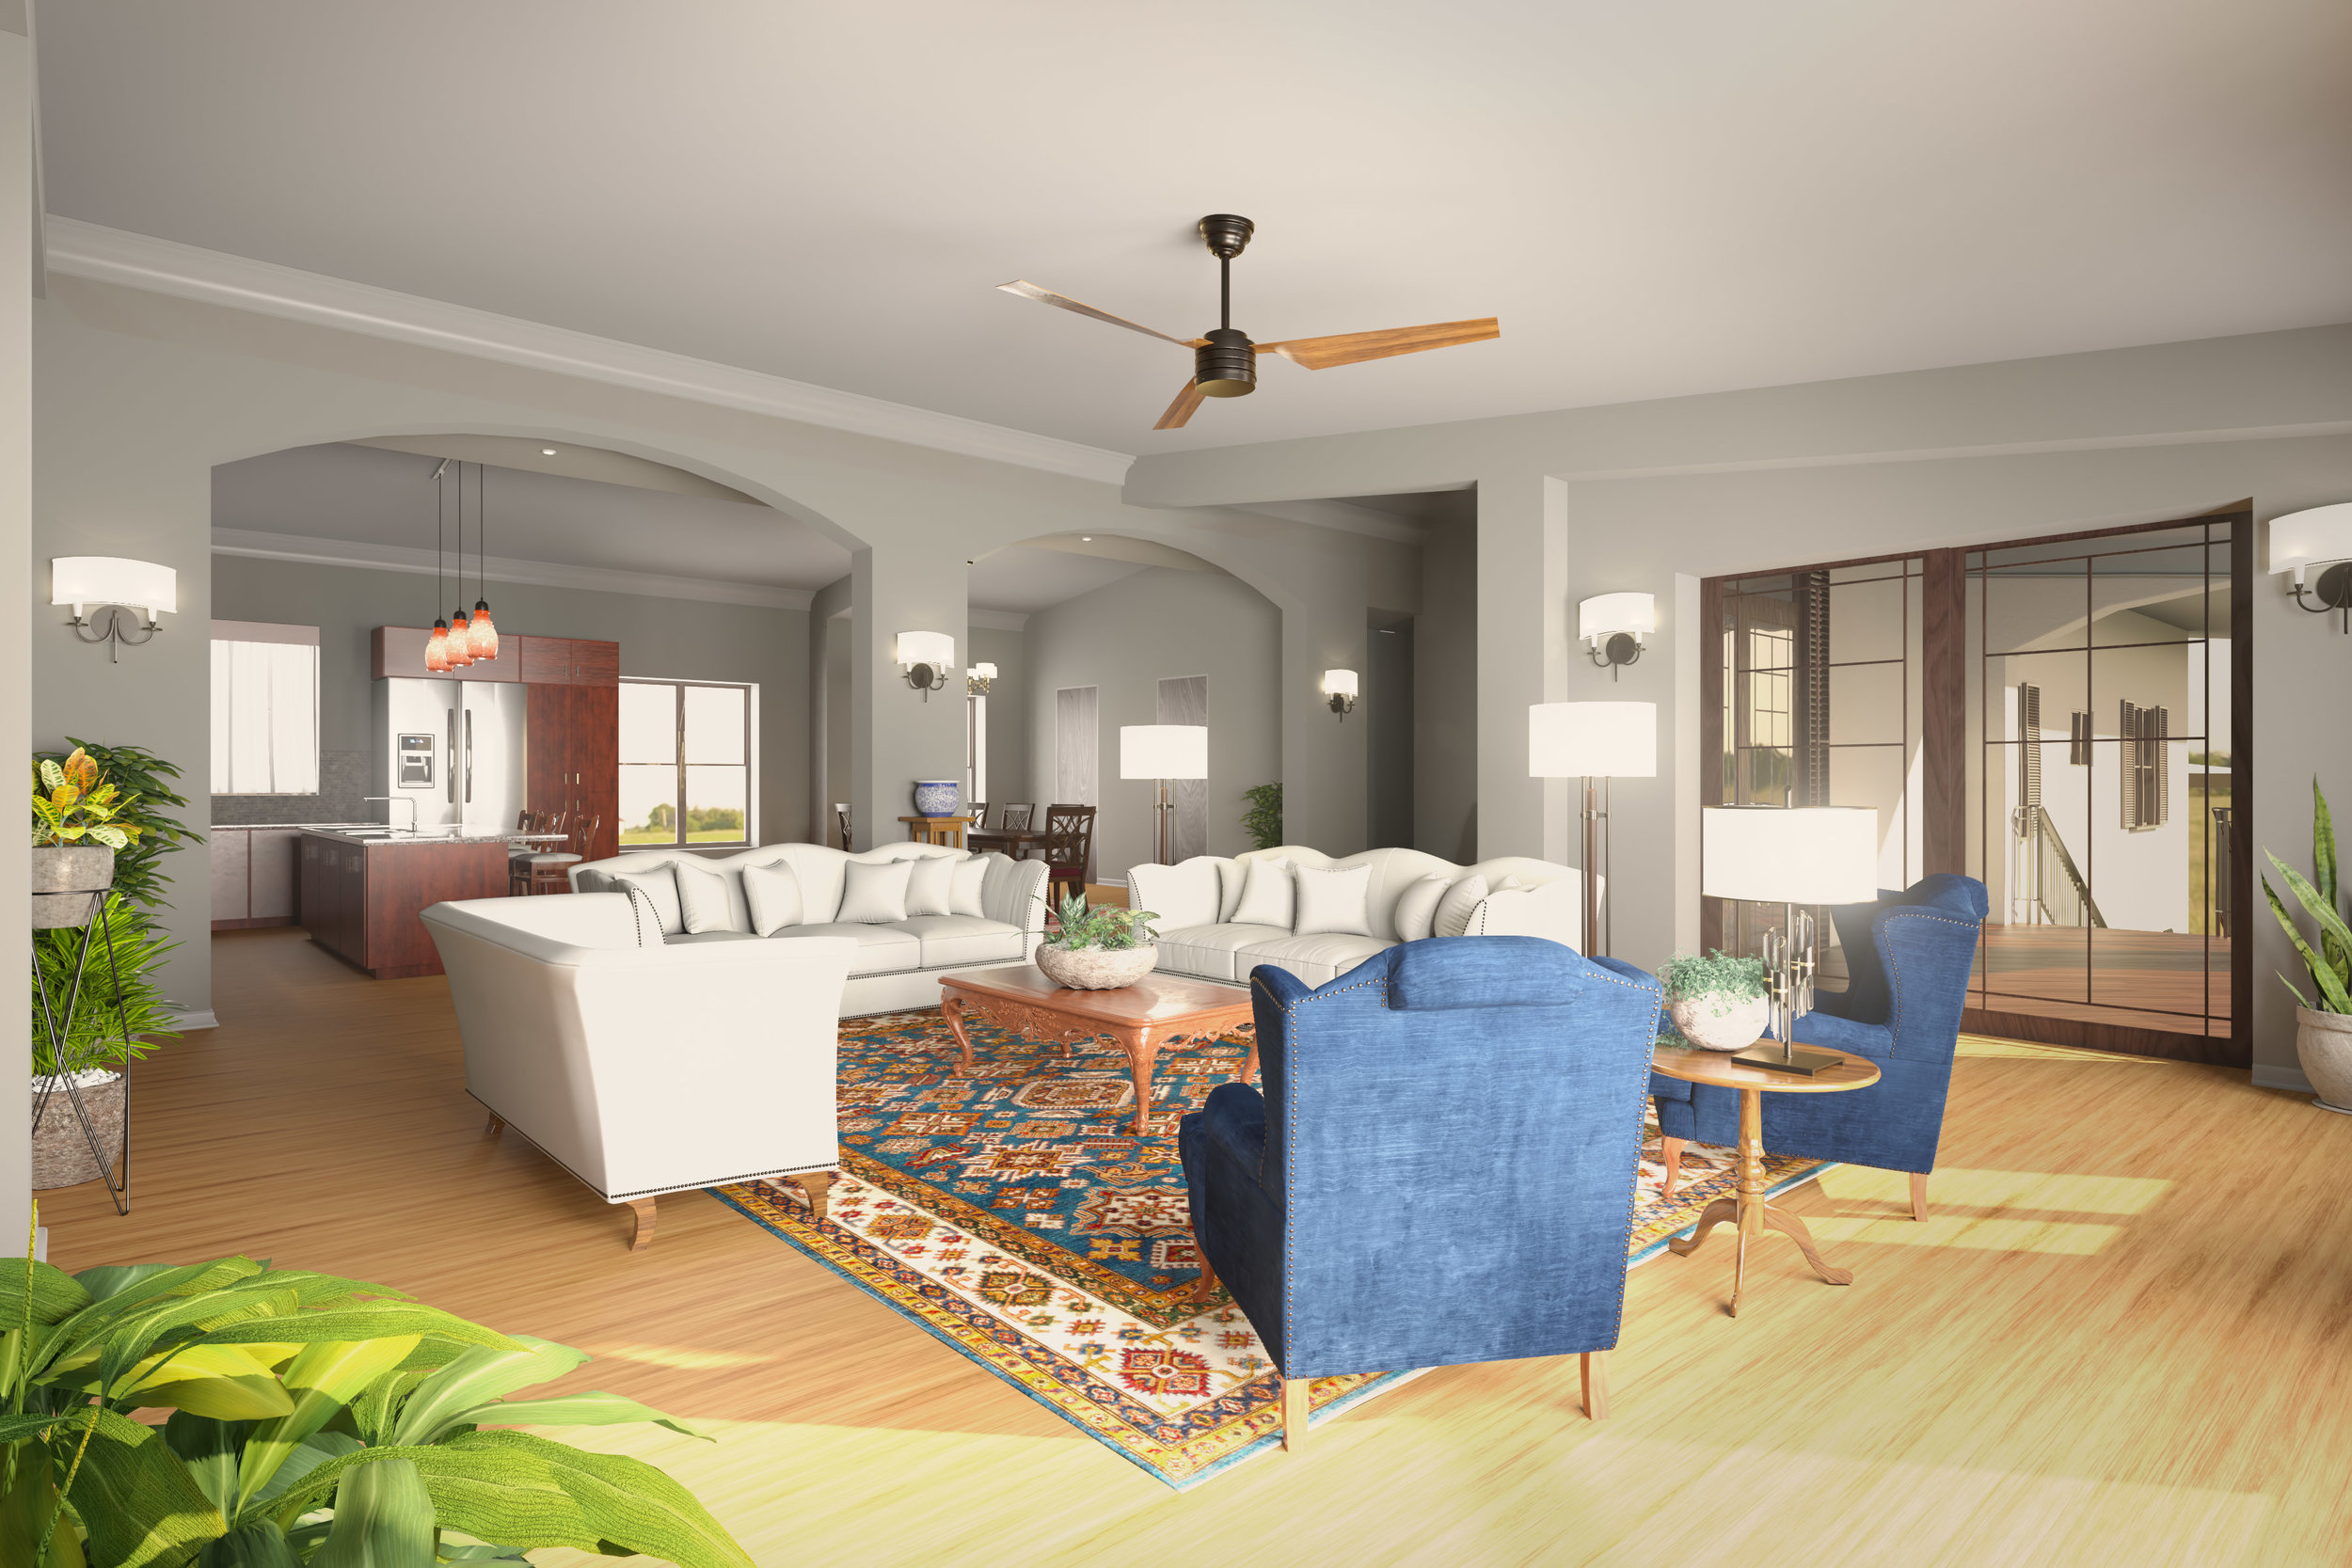 CAT5_PLN-province_c4d_working_Interior_0025_Camera_3_5_03-30-19_21_33.jpg